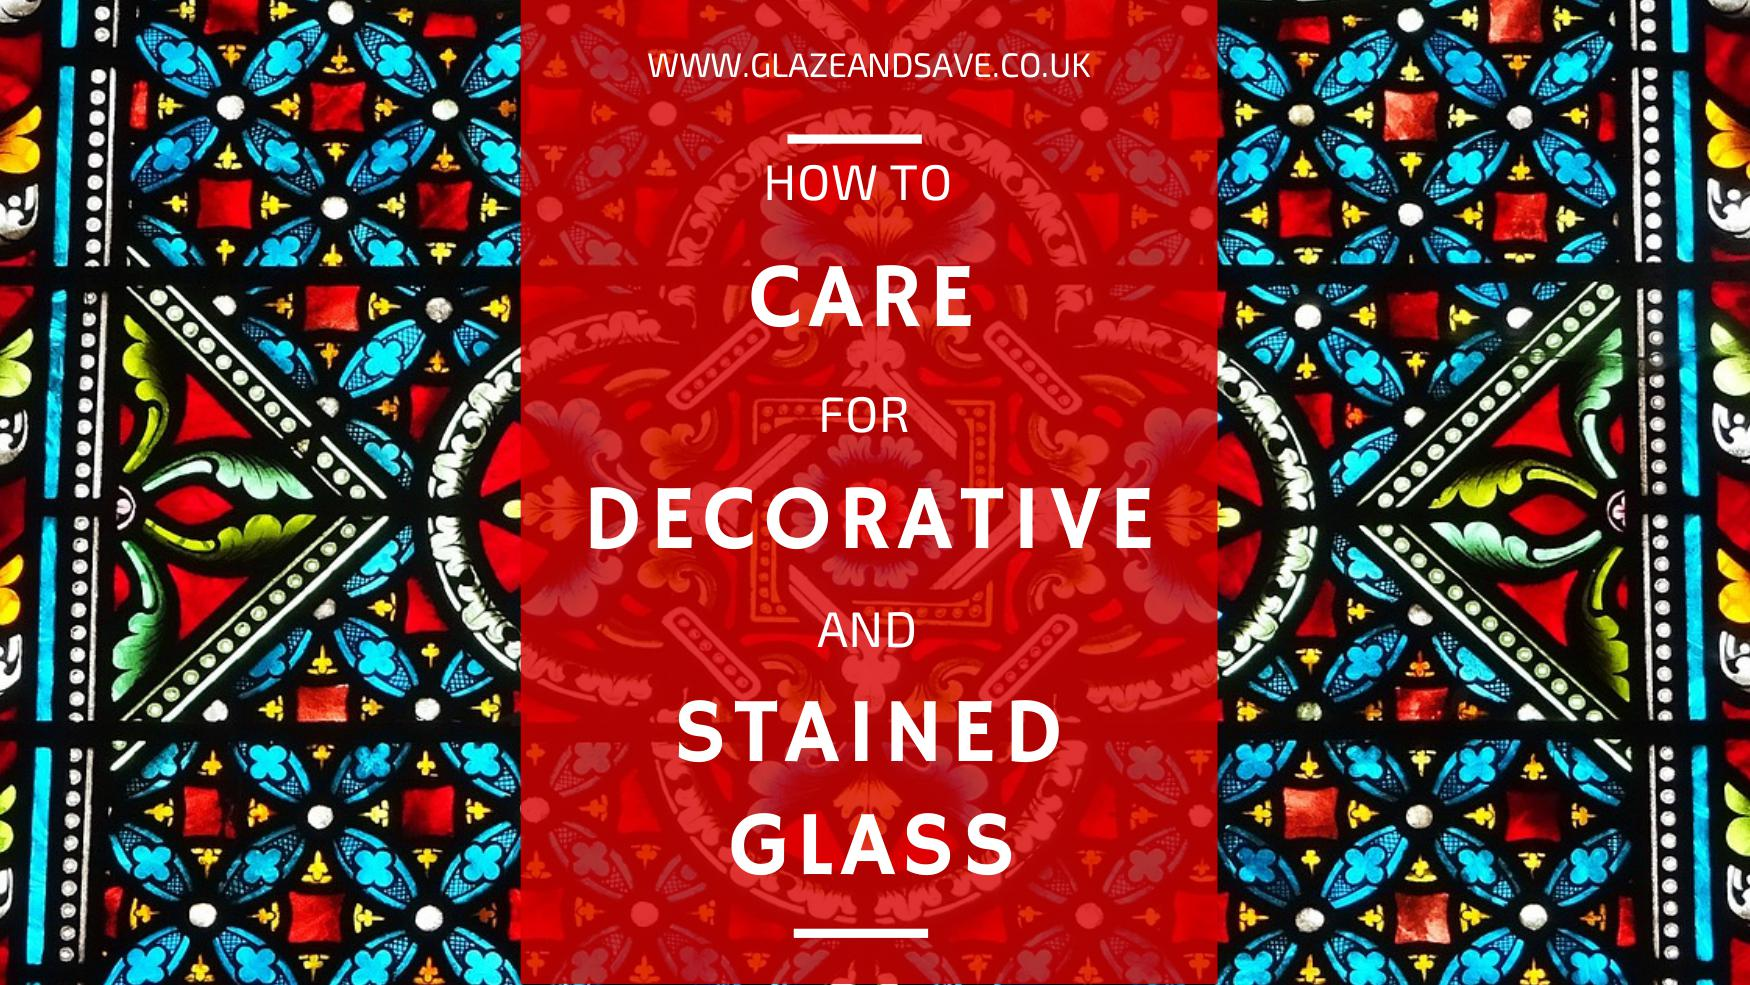 How to care for decorative and stained glass by Glaze & Save bespoke magnetic secondary glazing and draught proofing specialists based in Perth, Scotland.